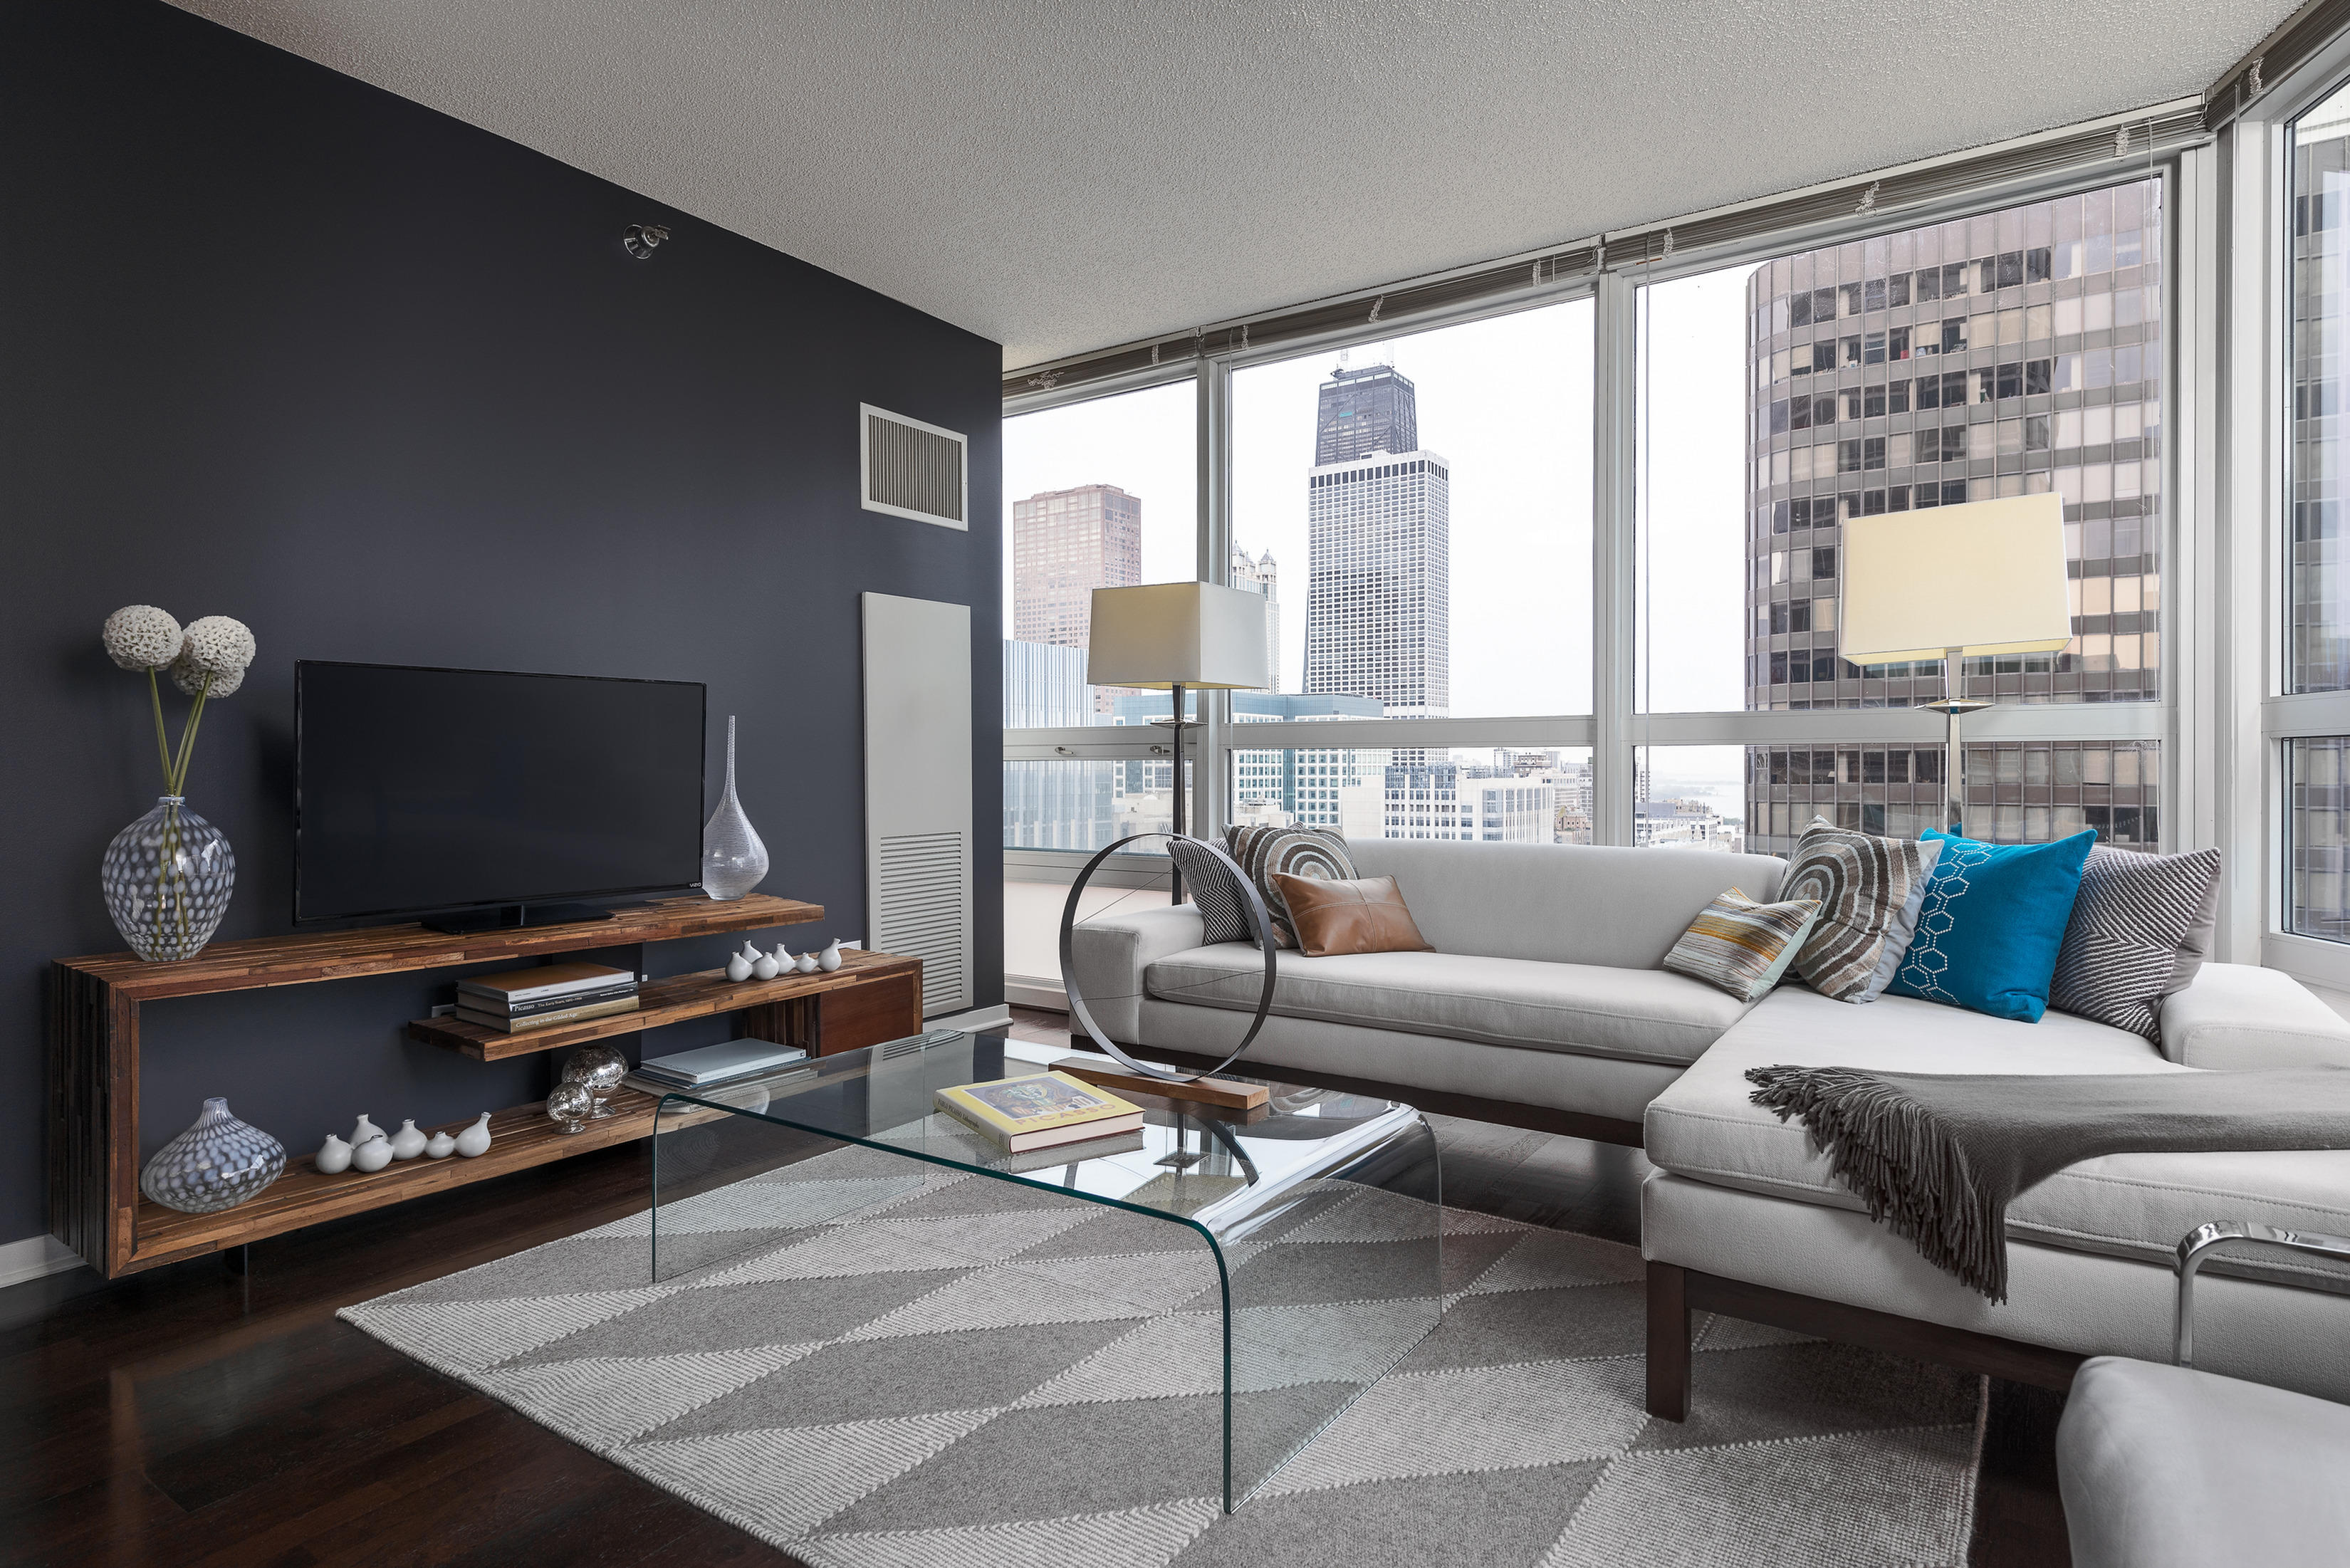 The Streeter Luxury Apartments